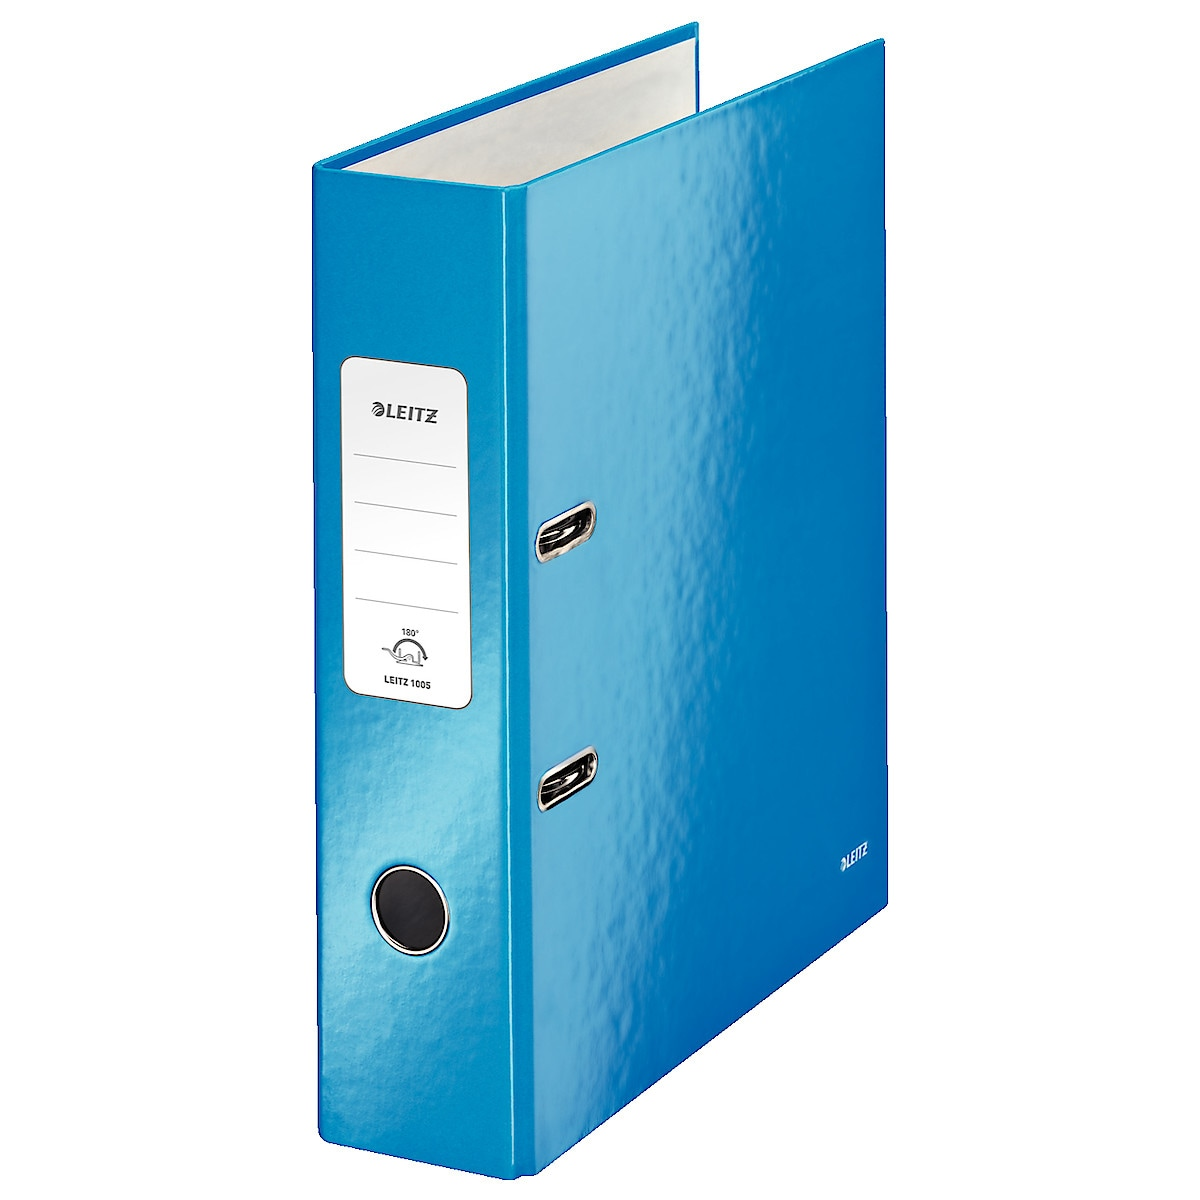 Leitz 180° WOW A4 Lever Arch File, 80 mm